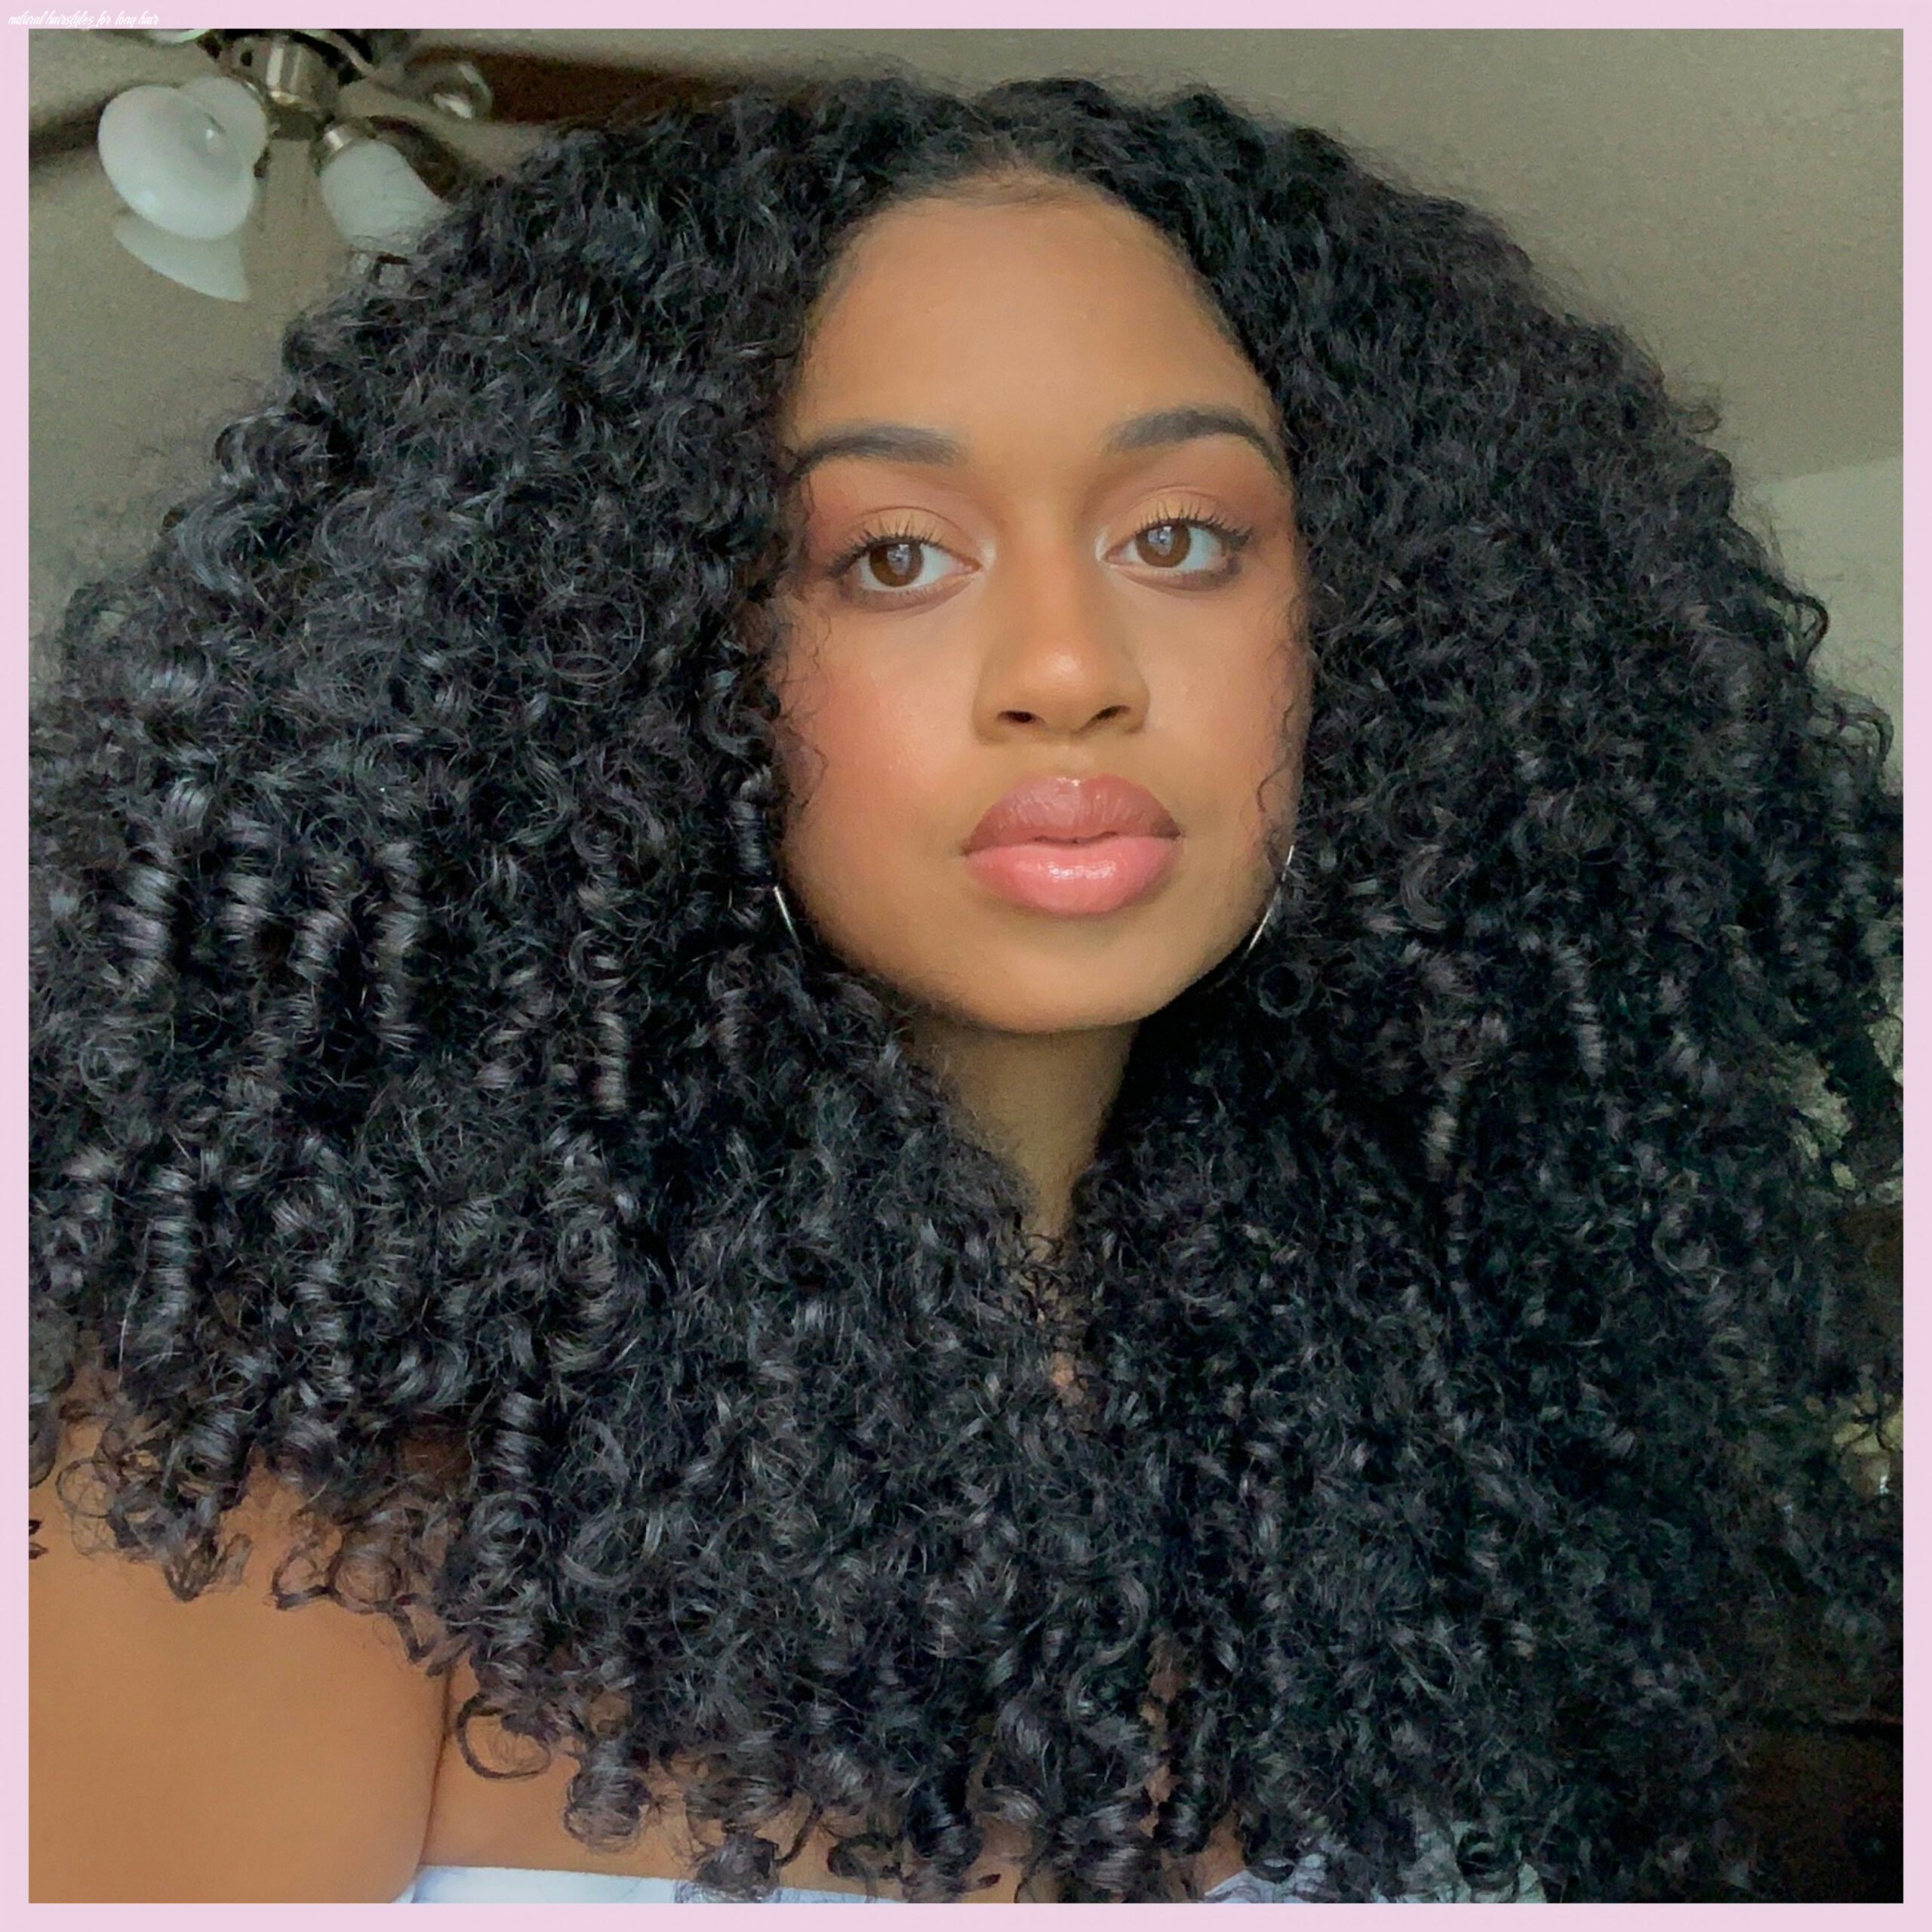 11 natural hairstyles you can definitely do at home | teen vogue natural hairstyles for long hair